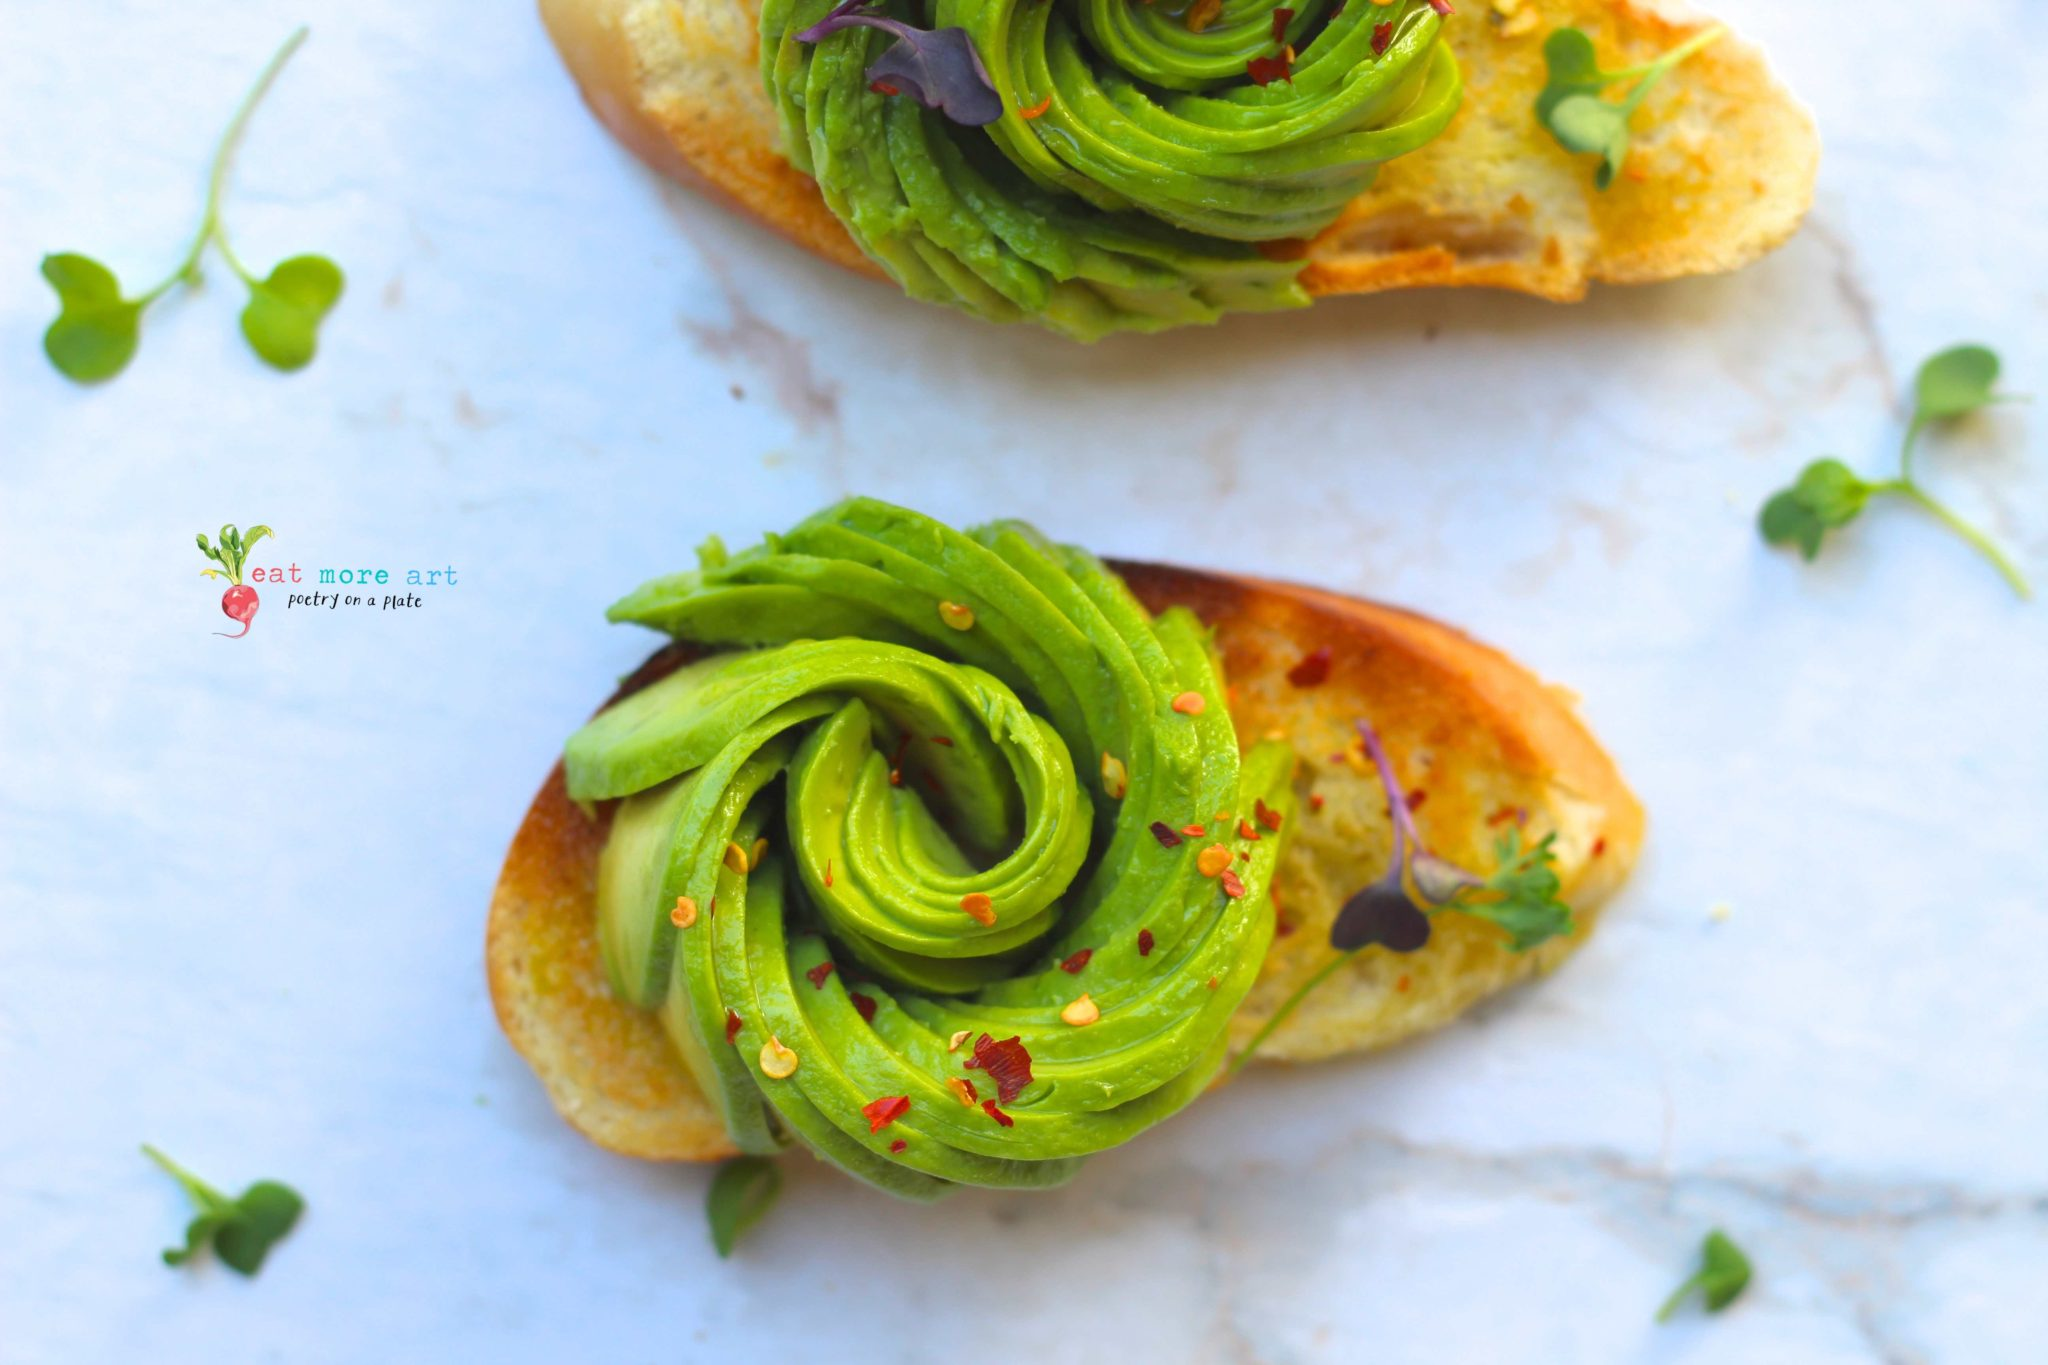 A toast topped with avocado rose